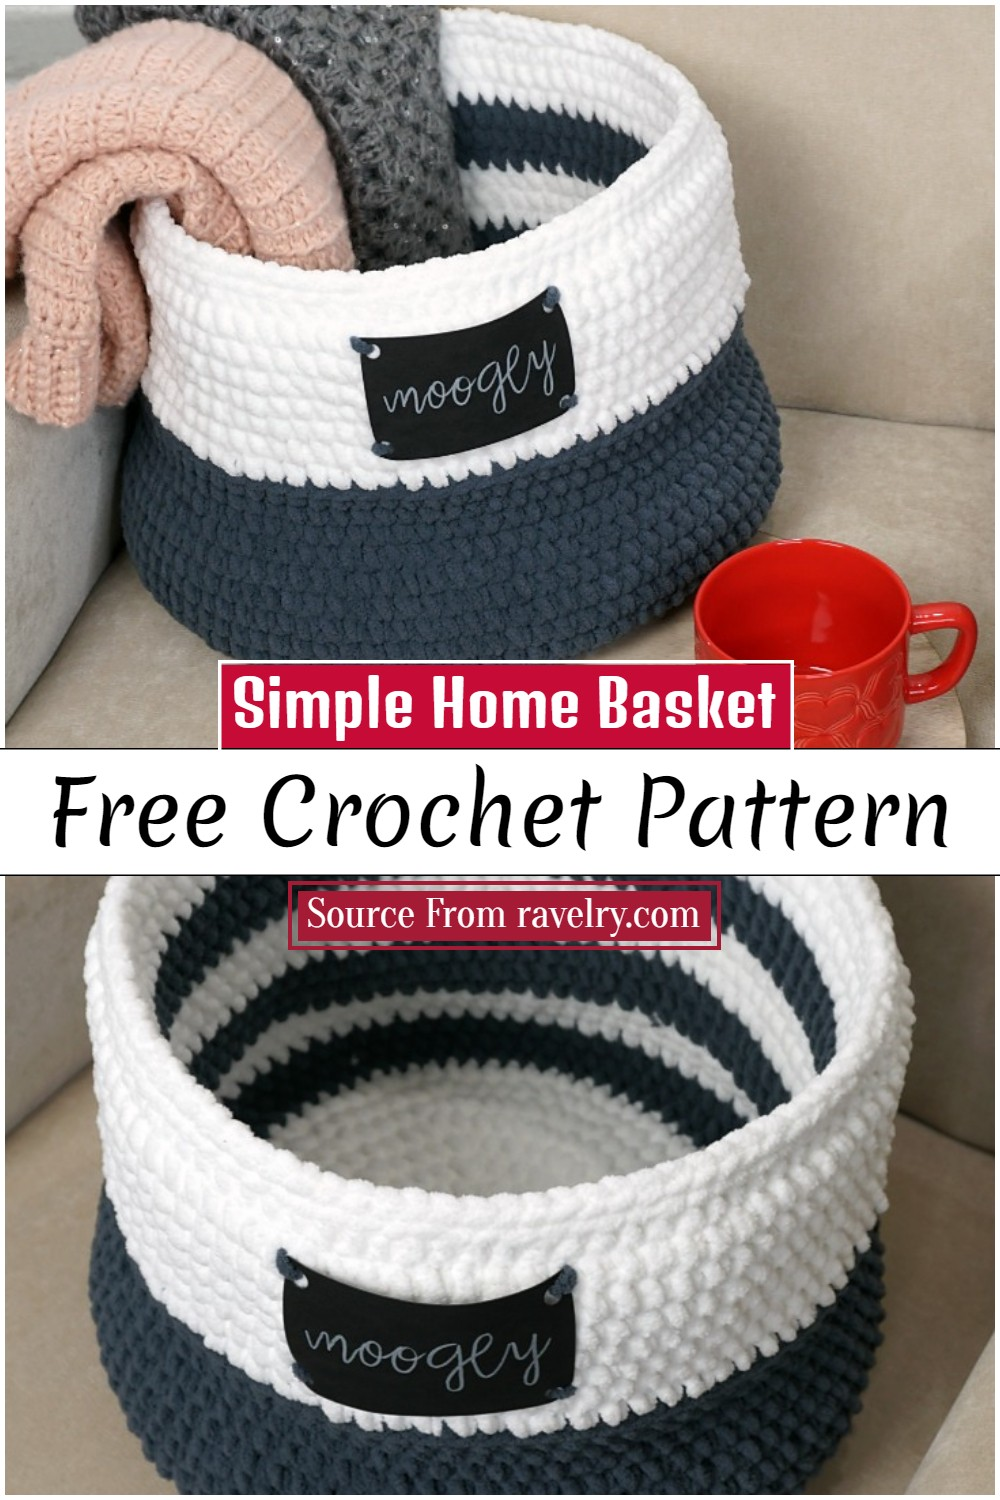 Simple Home Pattern